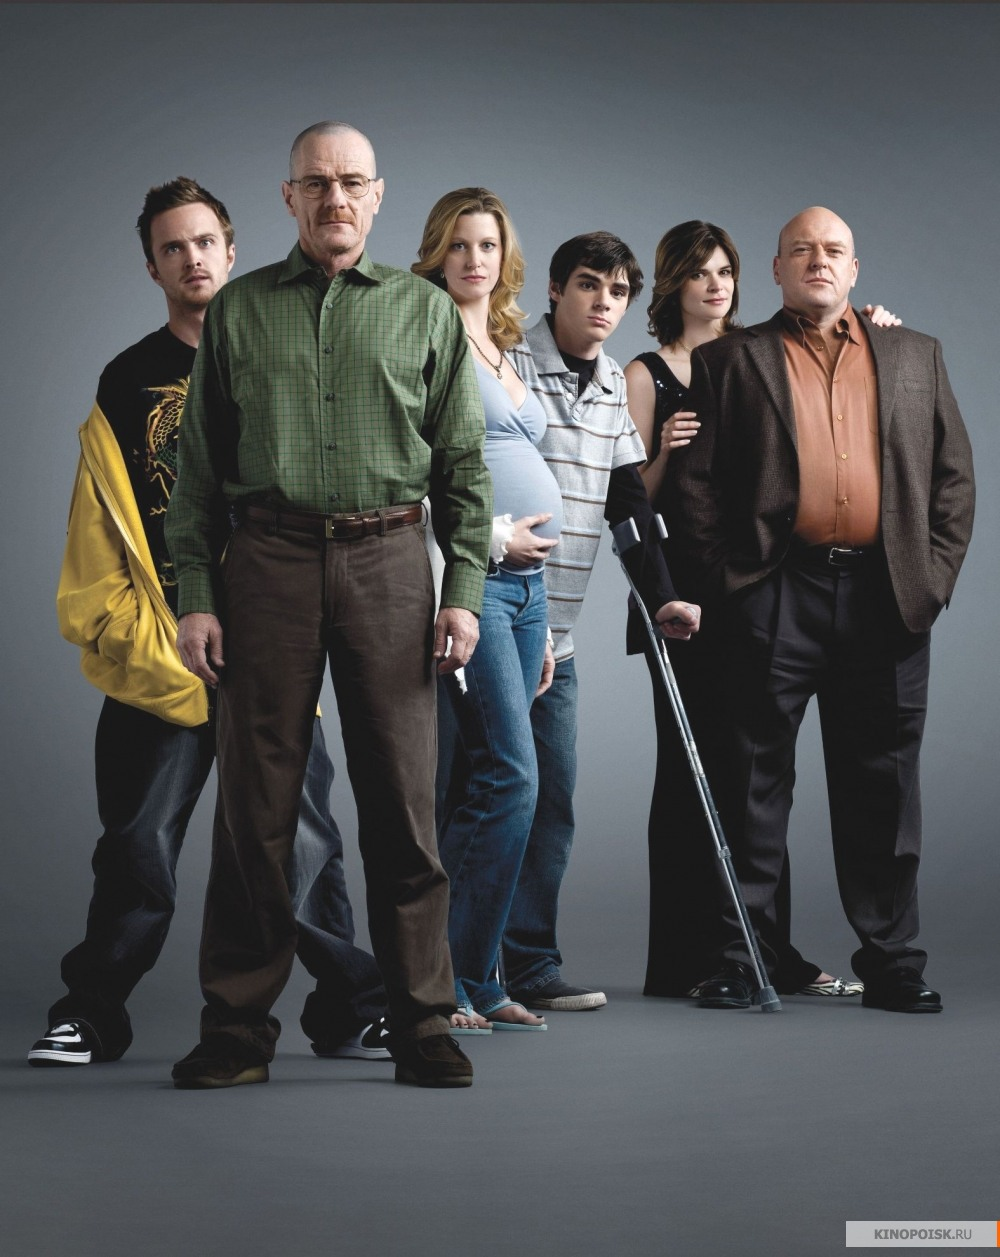 The fourth season of the American television drama series Breaking Bad premiered on July 17 2011 and concluded on October 9 2011 It consists of 13 episodes each